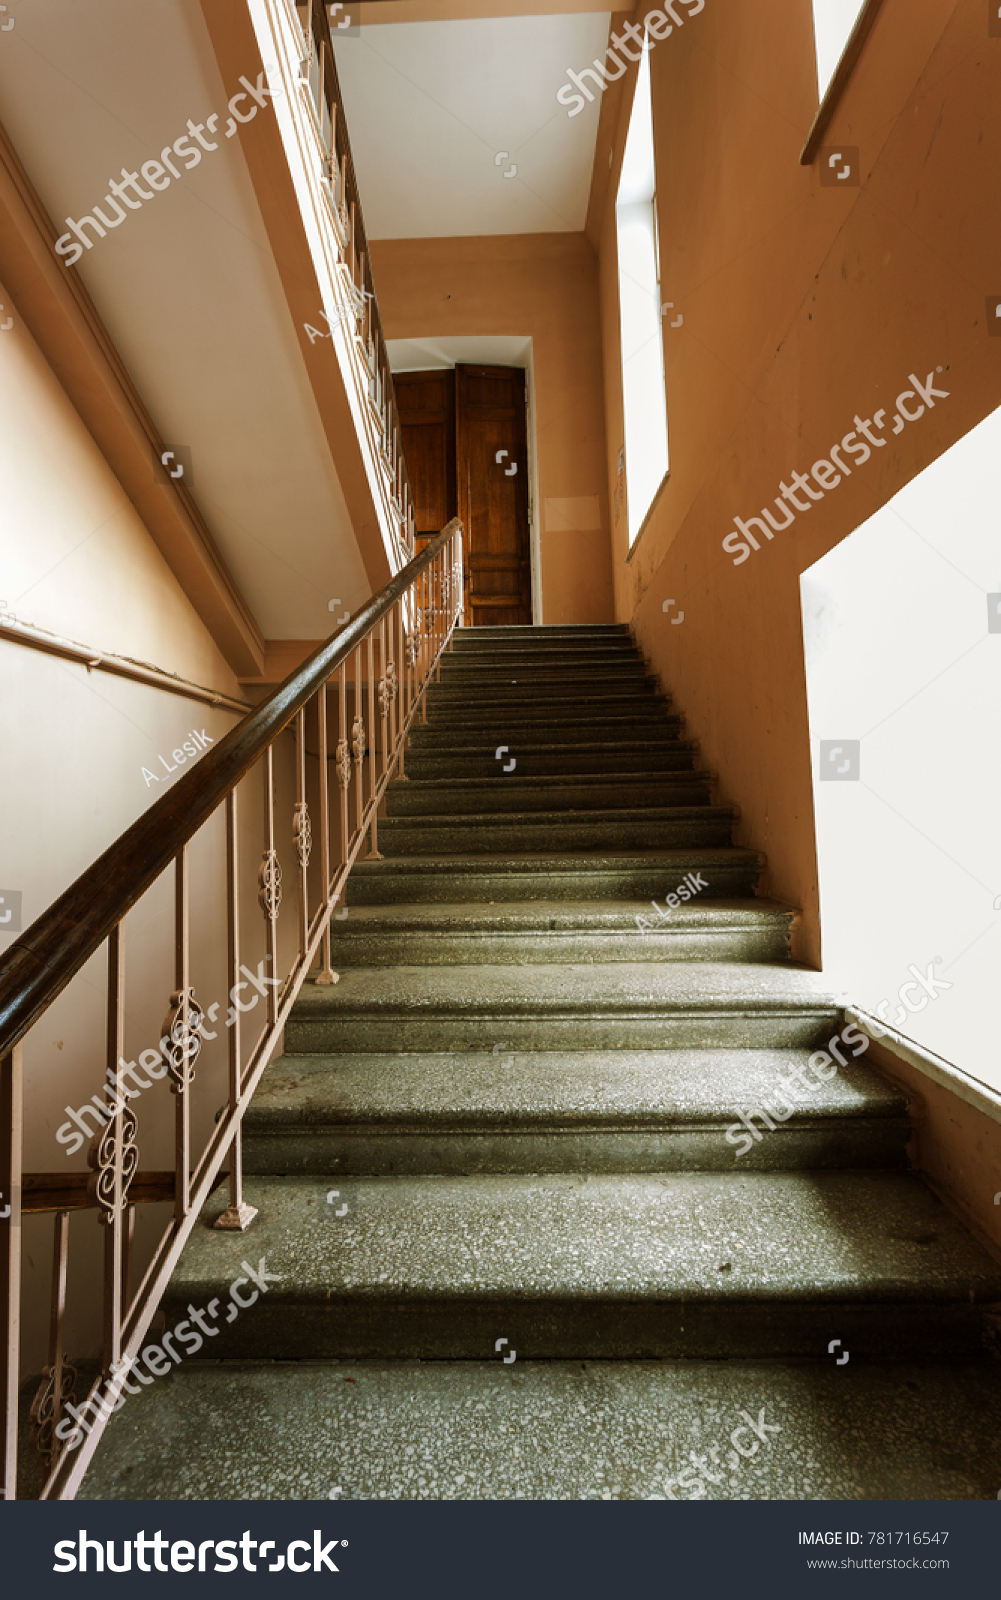 Cement, stone stairs of the old building. A vintage stone staircase between the floors of an obsolete building. Building fashion and technology of the 20th century in the USSR #781716547